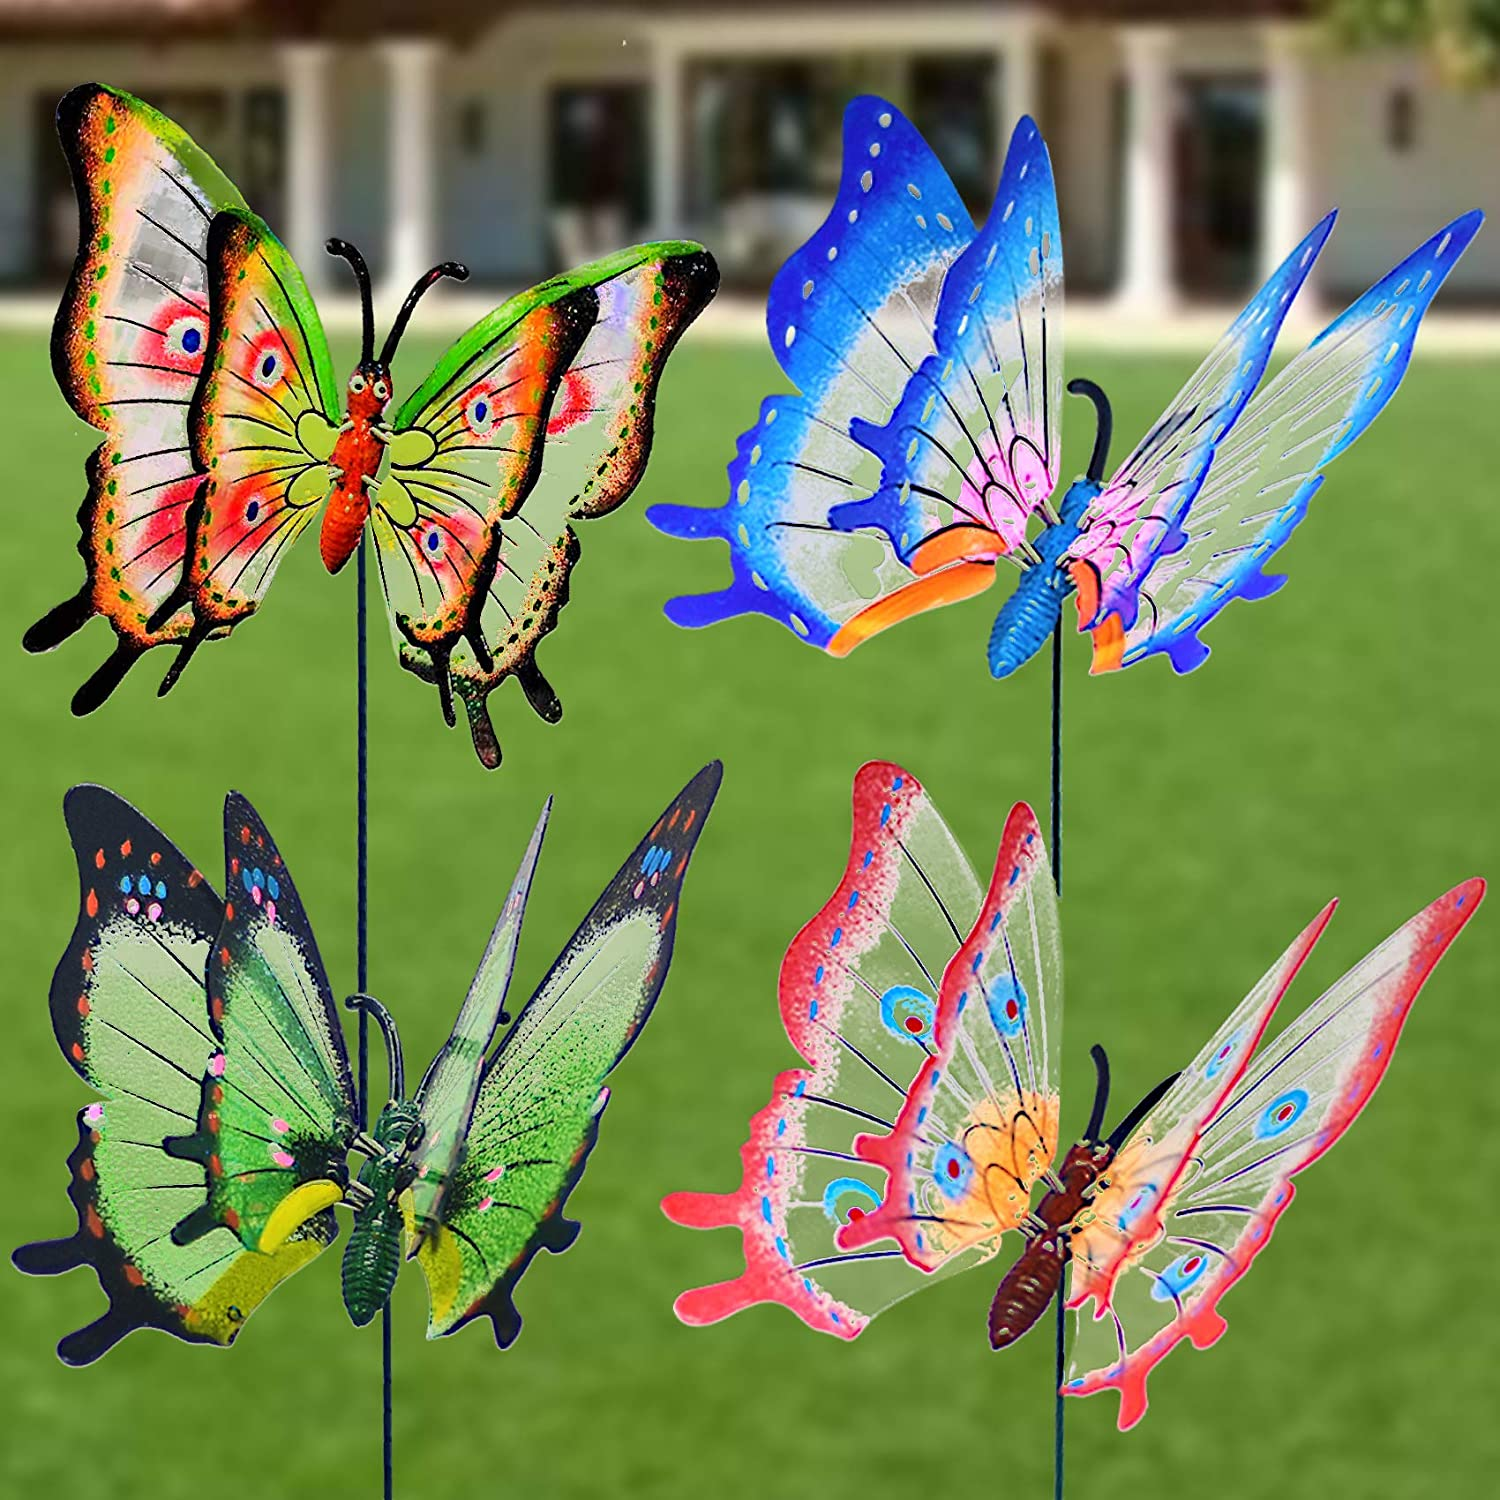 FENELY Giant Butterfly Garden Stakes Decorations Outdoor 3D Large Butterflies Lawn Decorative Yard Decor Patio Accessories Ornaments Gardening Art Christmas Whimsical Gifts (Pack of 4)